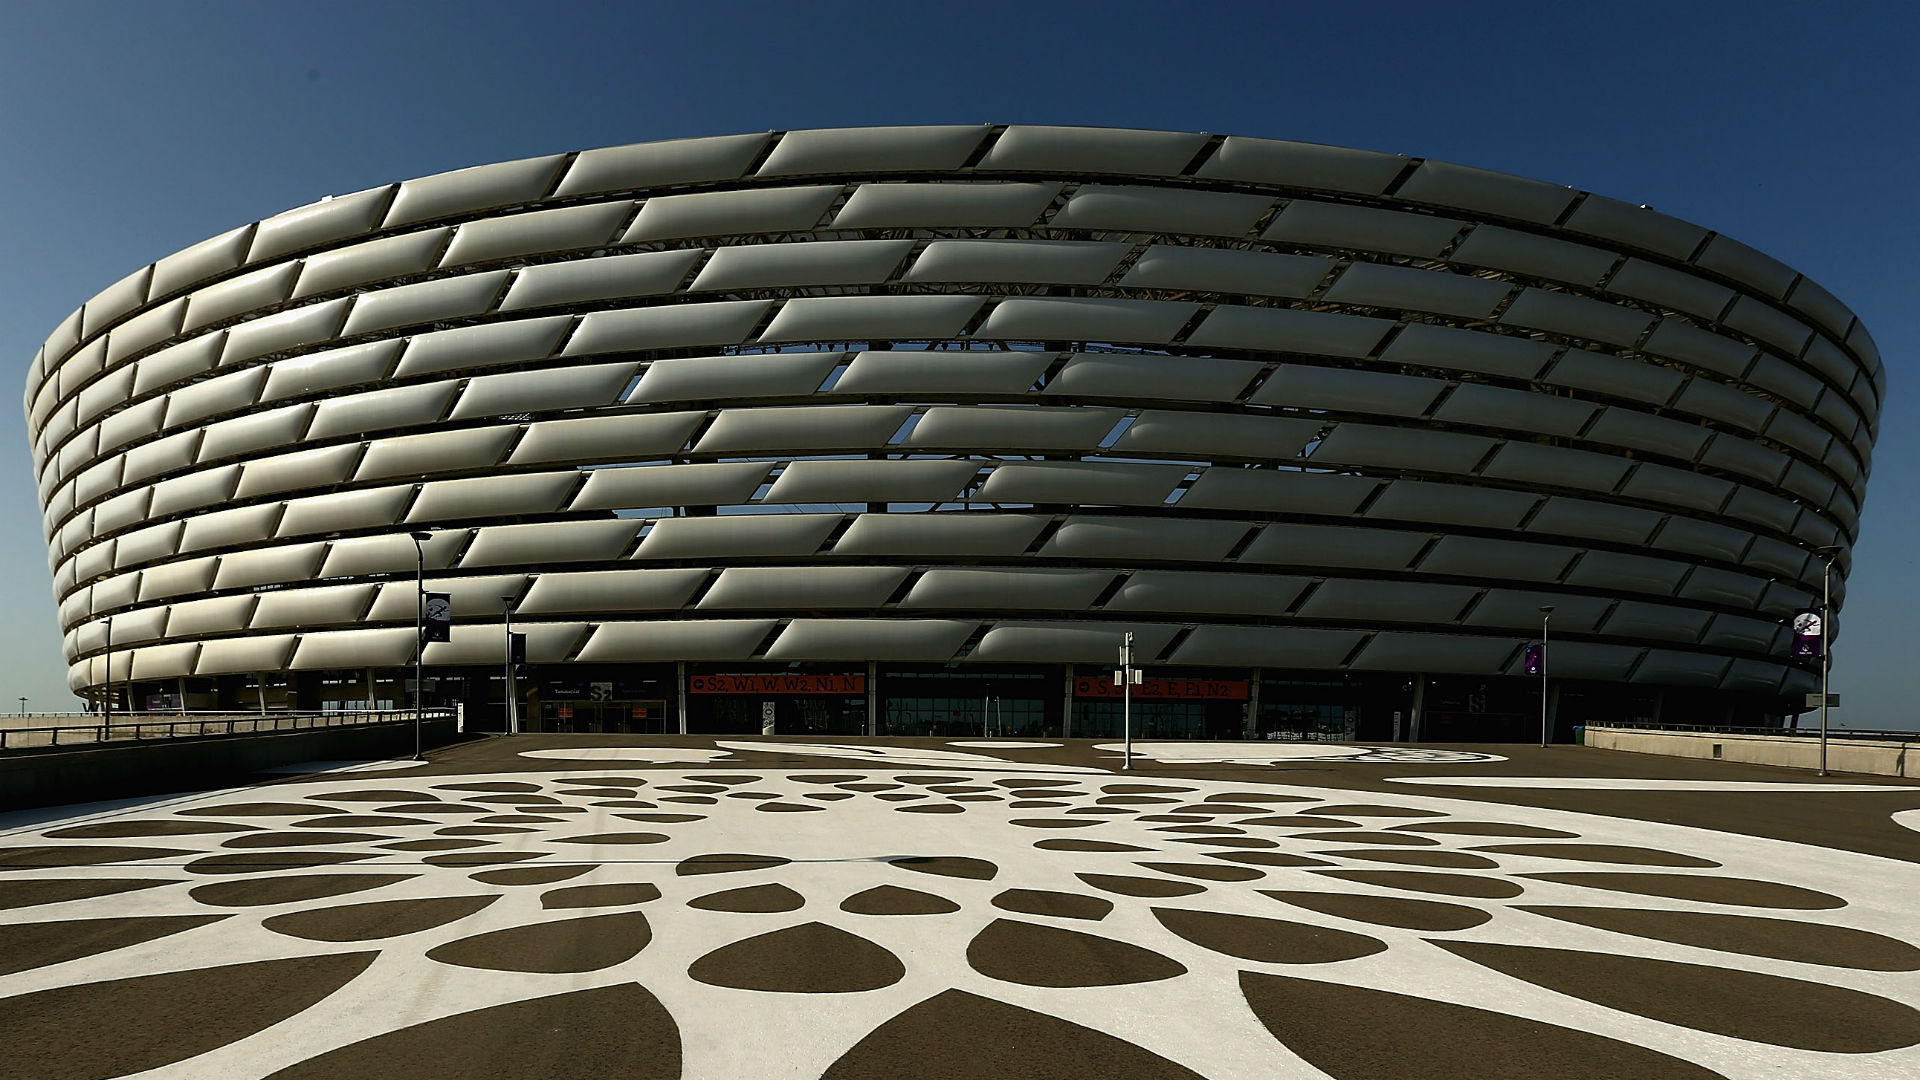 UEFA has been the target of serious criticism for hosting the Europa League final in Baku and Arsenal have voiced their disapproval.